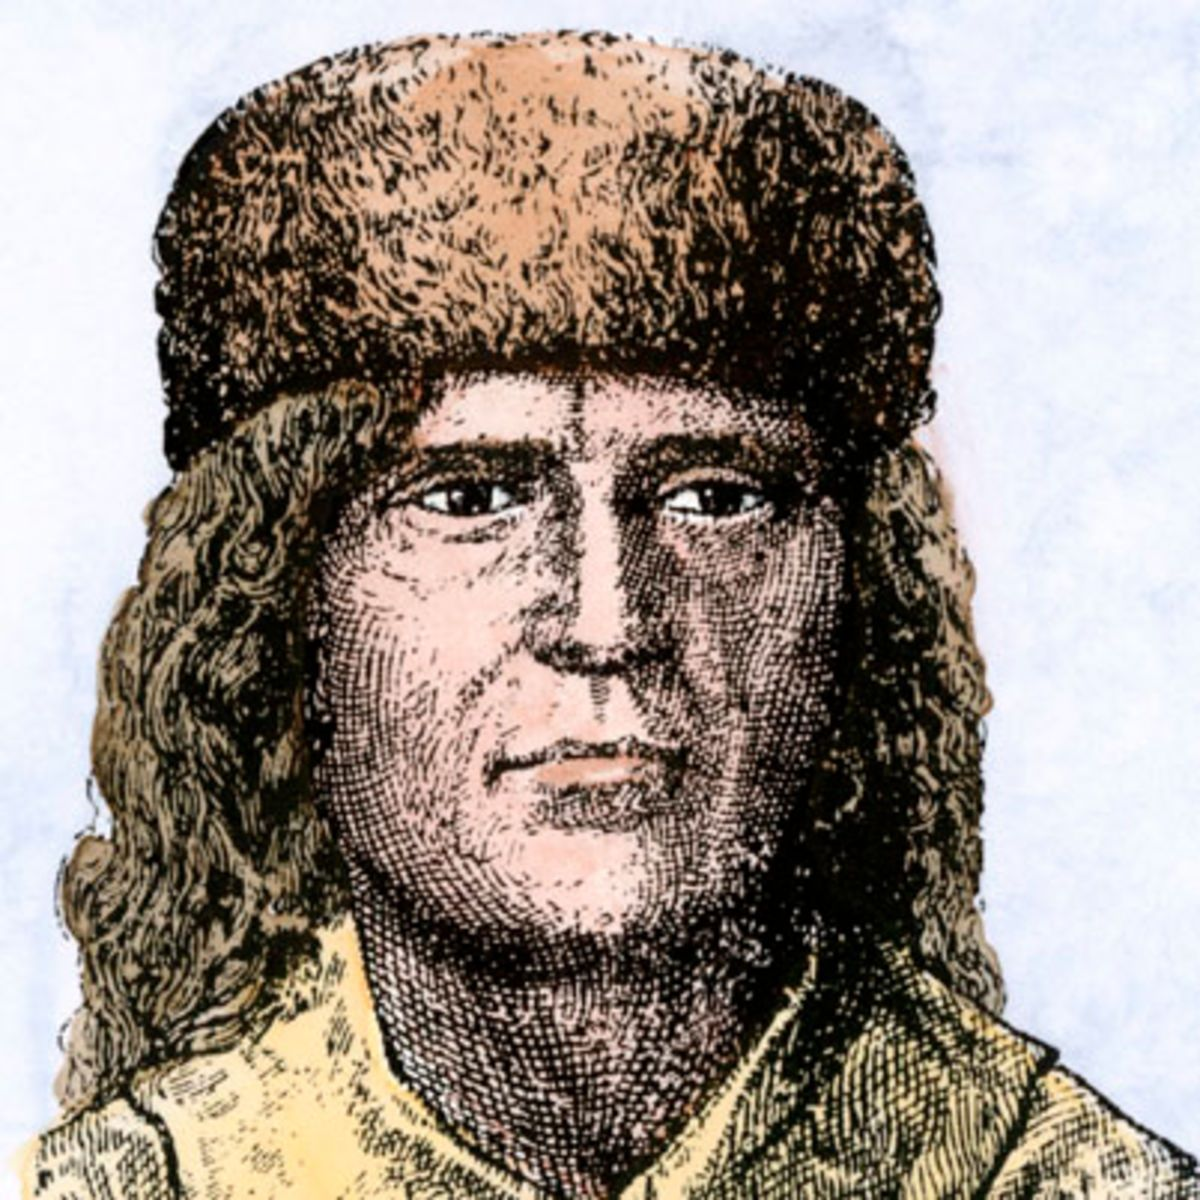 Louis Joliet was a 17th century Canadian explorer who, aided by Native American communities, explored the origins of the Mississippi River.